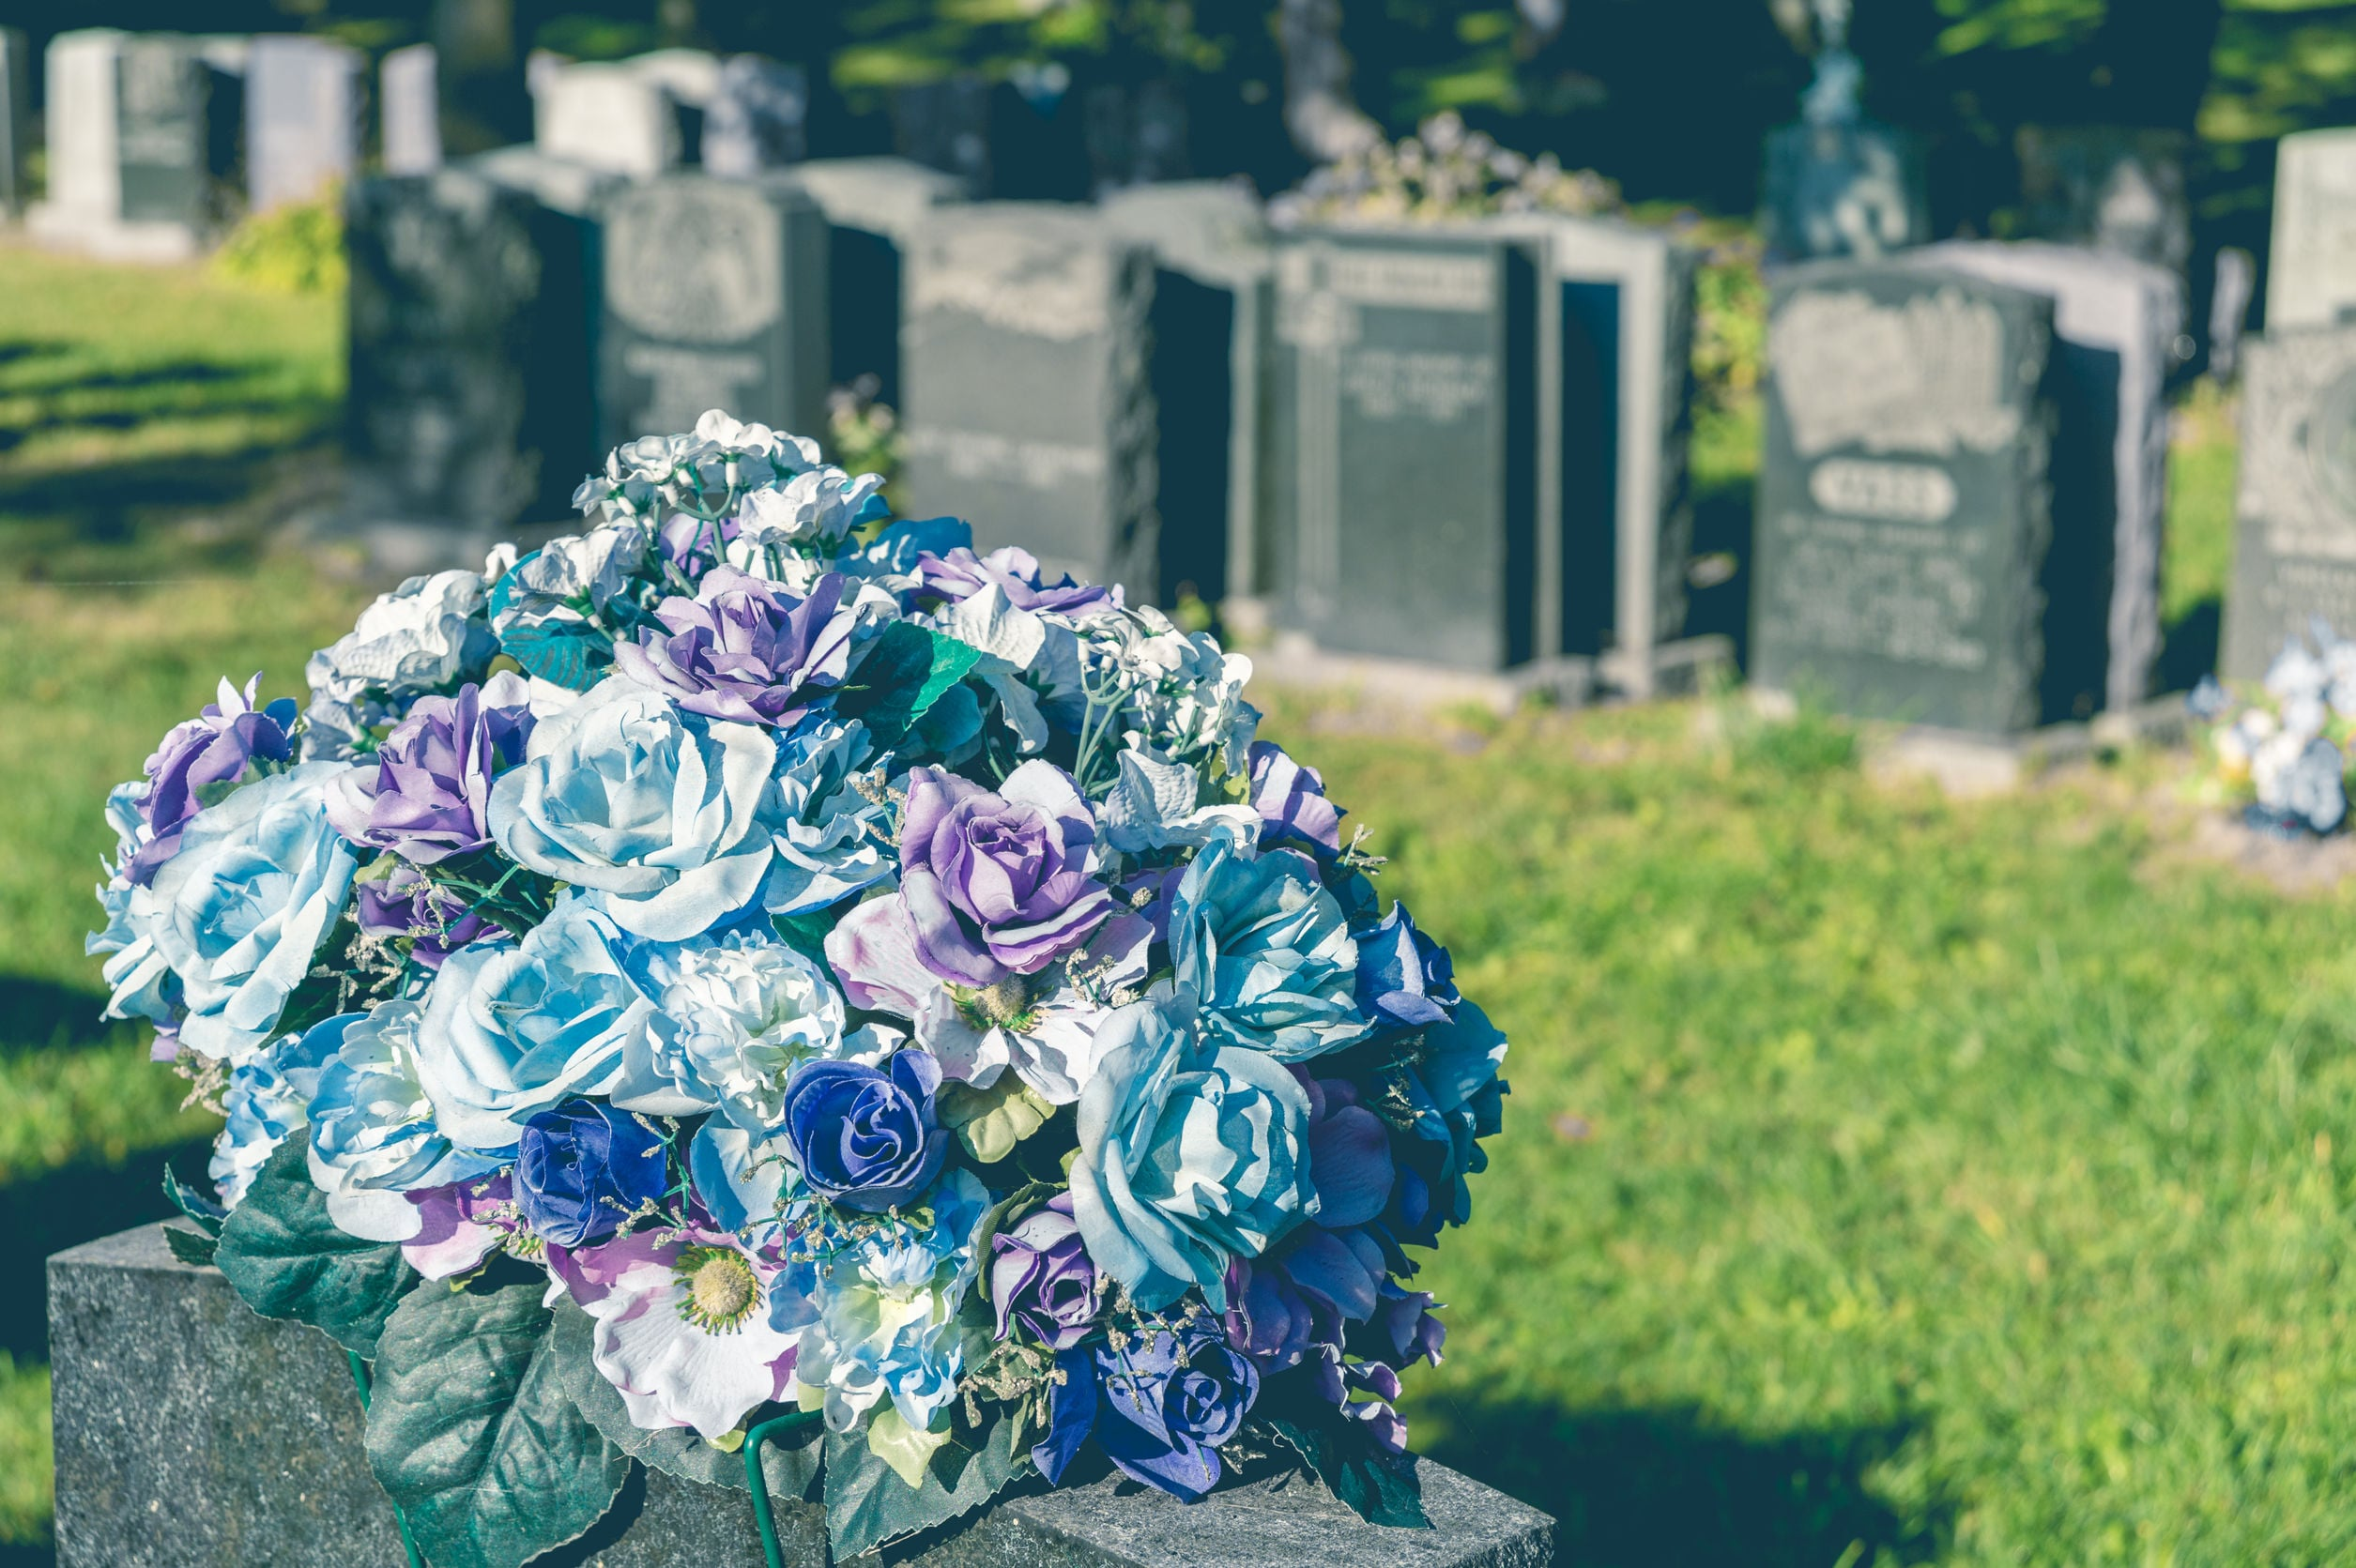 How Can Florida Funeral Home or Mortuary Negligence Be Proven?